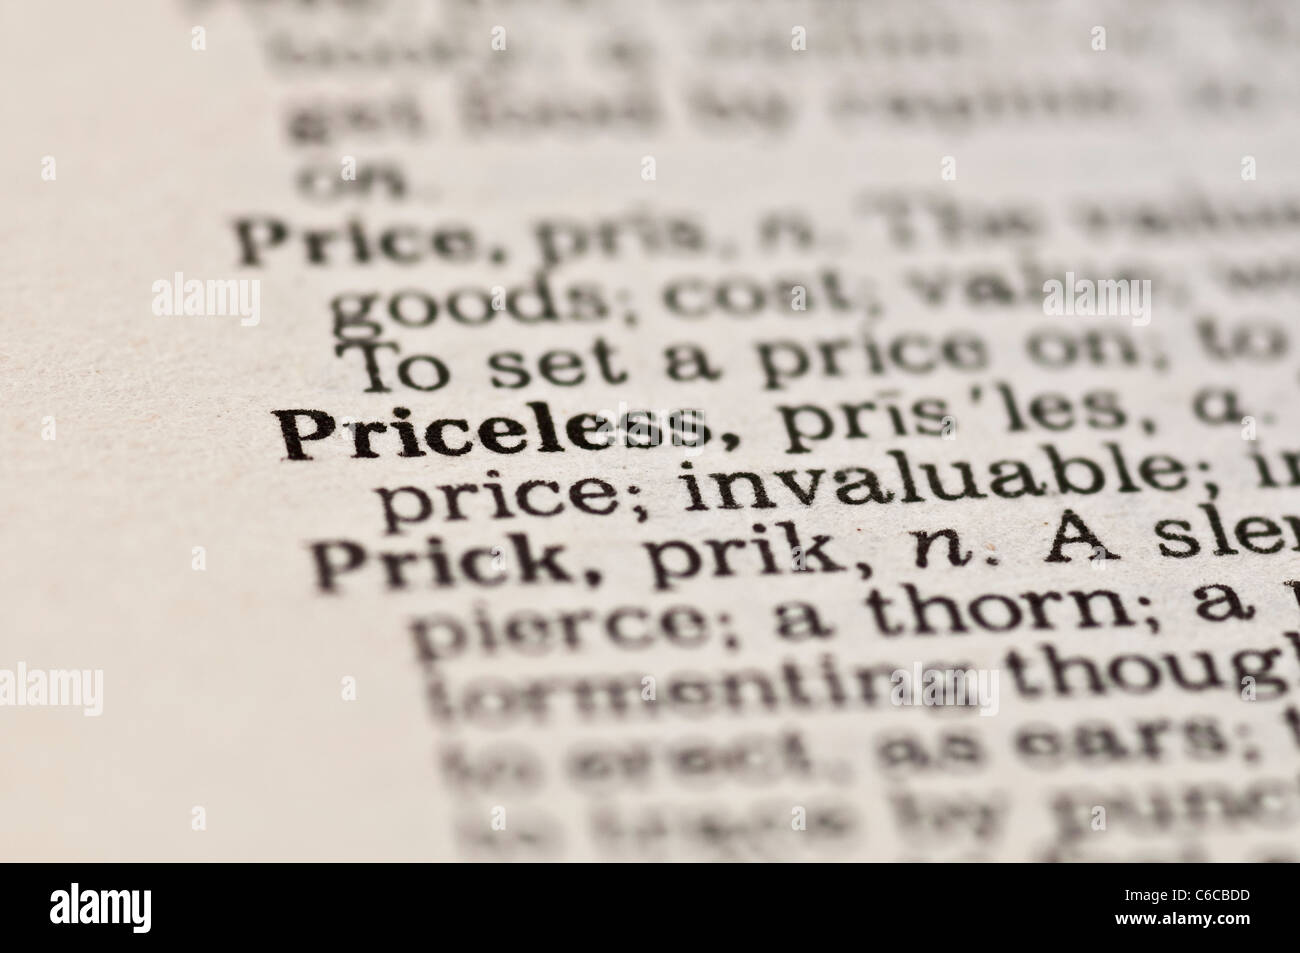 Extreme close up of the word PRICELESS found inside a dictionary - Stock Image